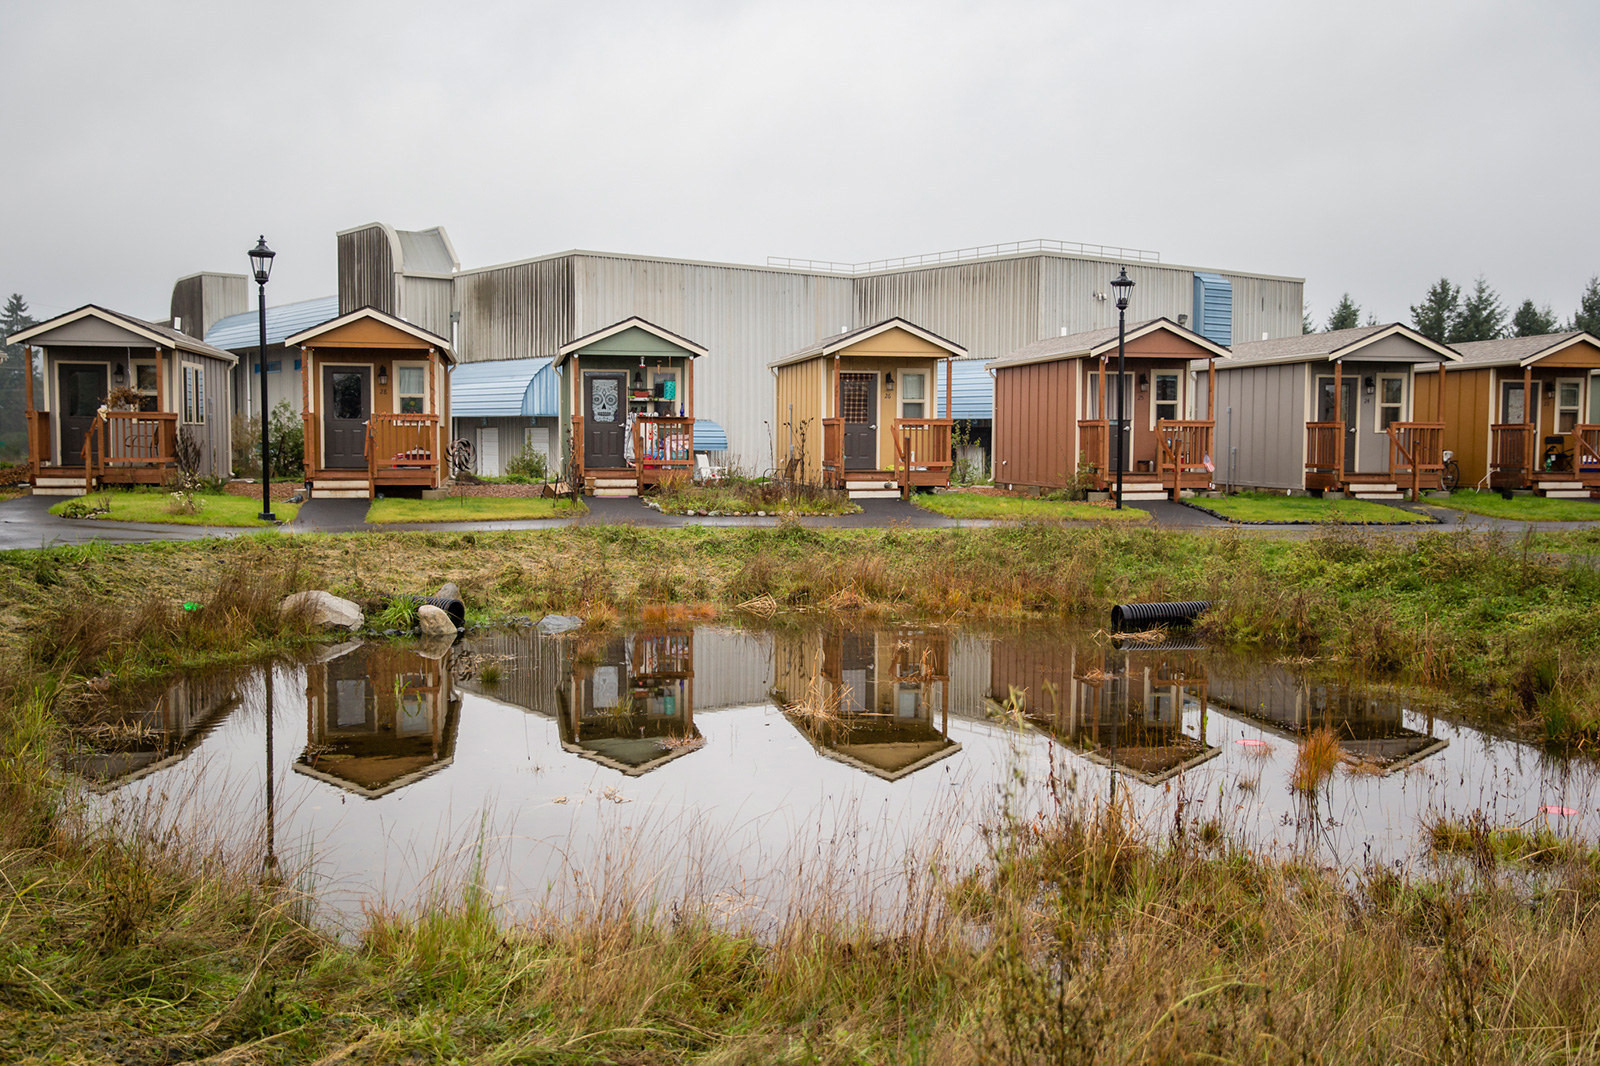 Tiny-House Villages: Safe Havens for the Homeless, Quixote Village. Image © Leah Nash for BuzzFeed